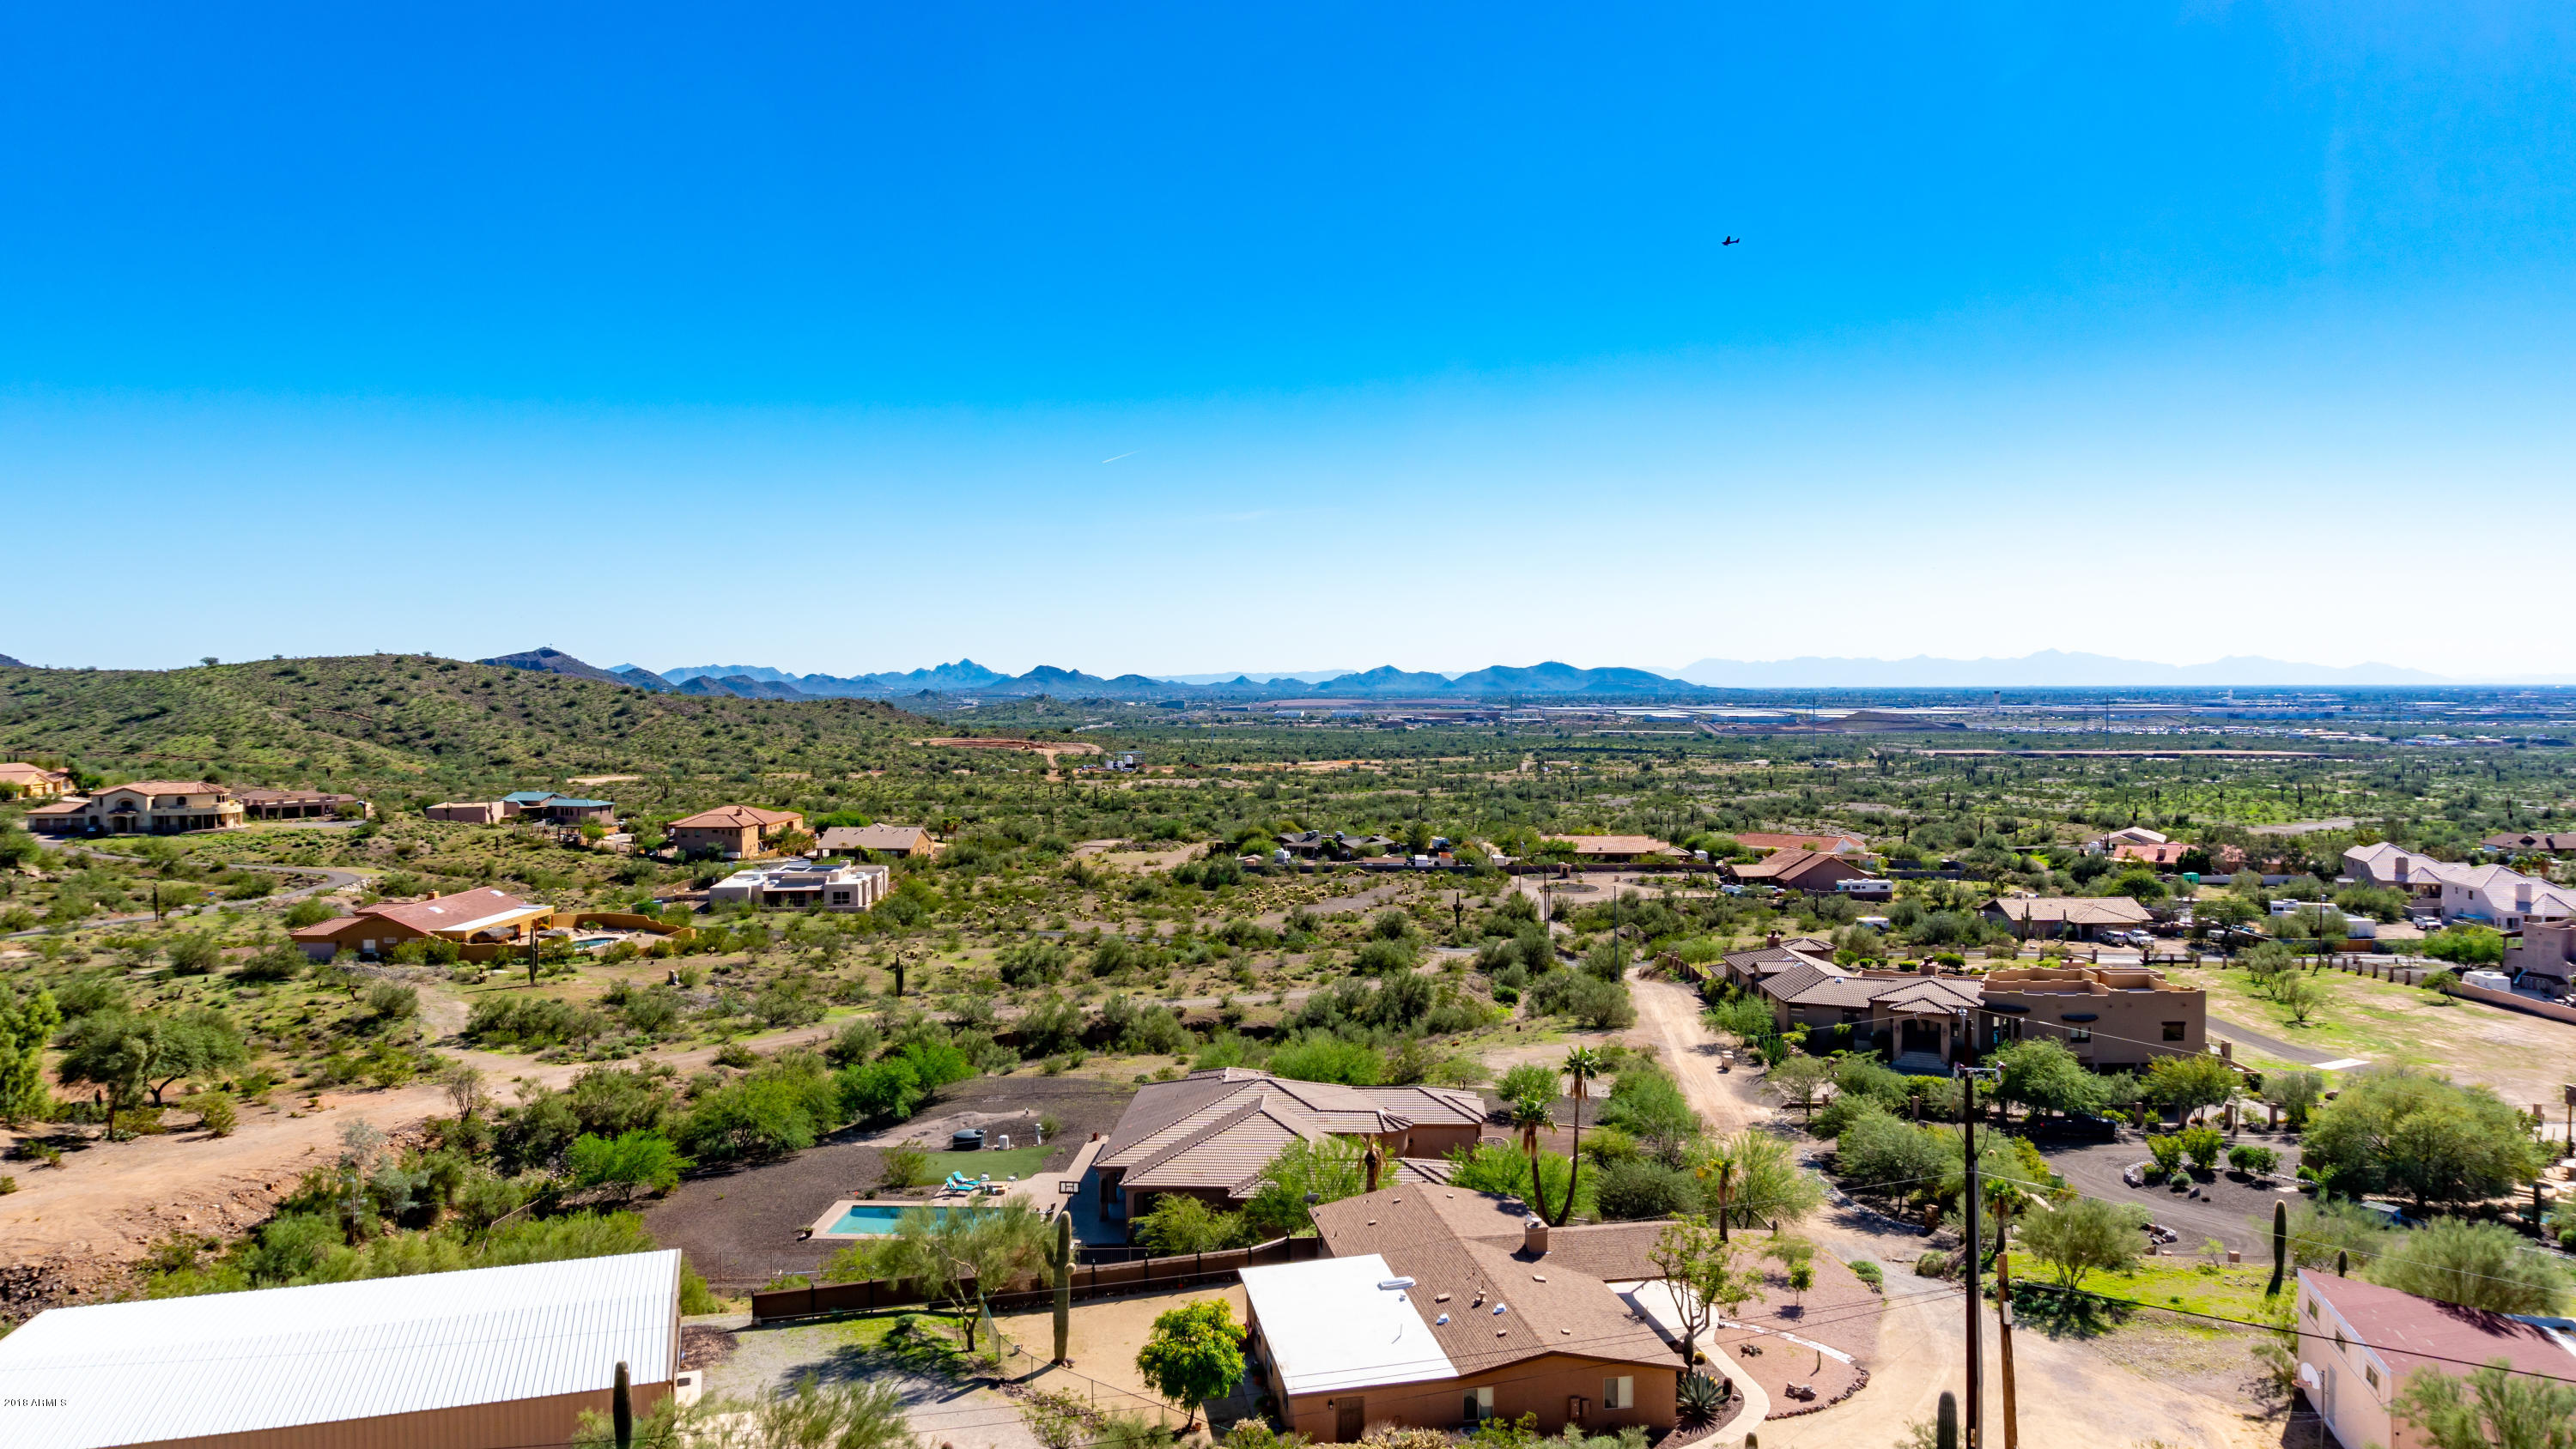 MLS 5836137 310 E Briles Road, Phoenix, AZ 85085 Phoenix AZ Deer Valley